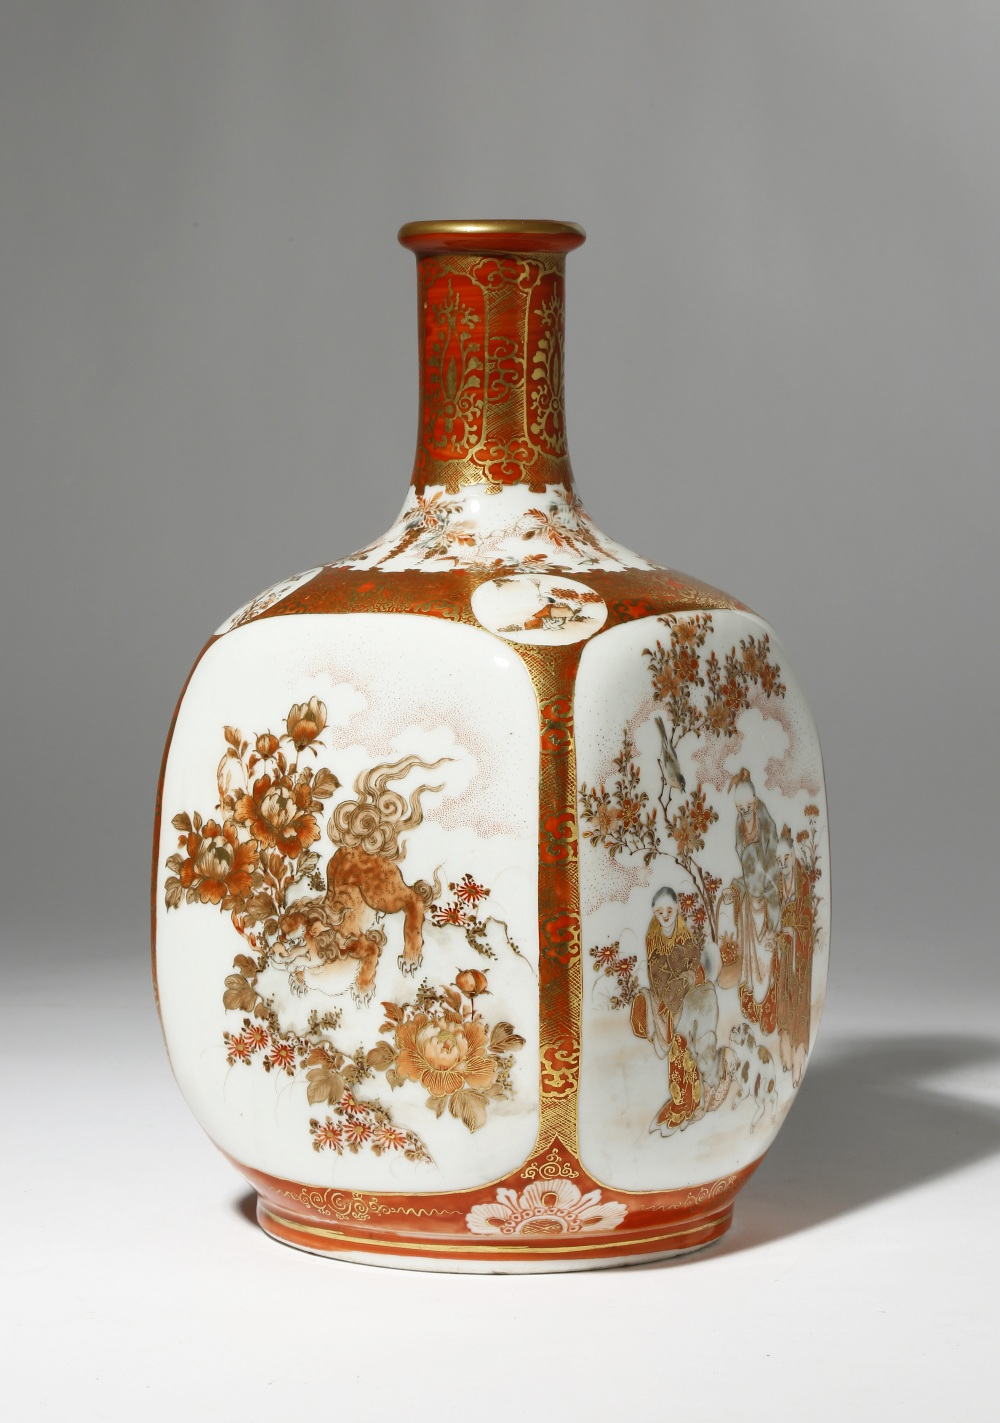 A JAPANESE KUTANI BOTTLE VASE MEIJI PERIOD, 19TH CENTURY With a tall cylindrical neck rising from